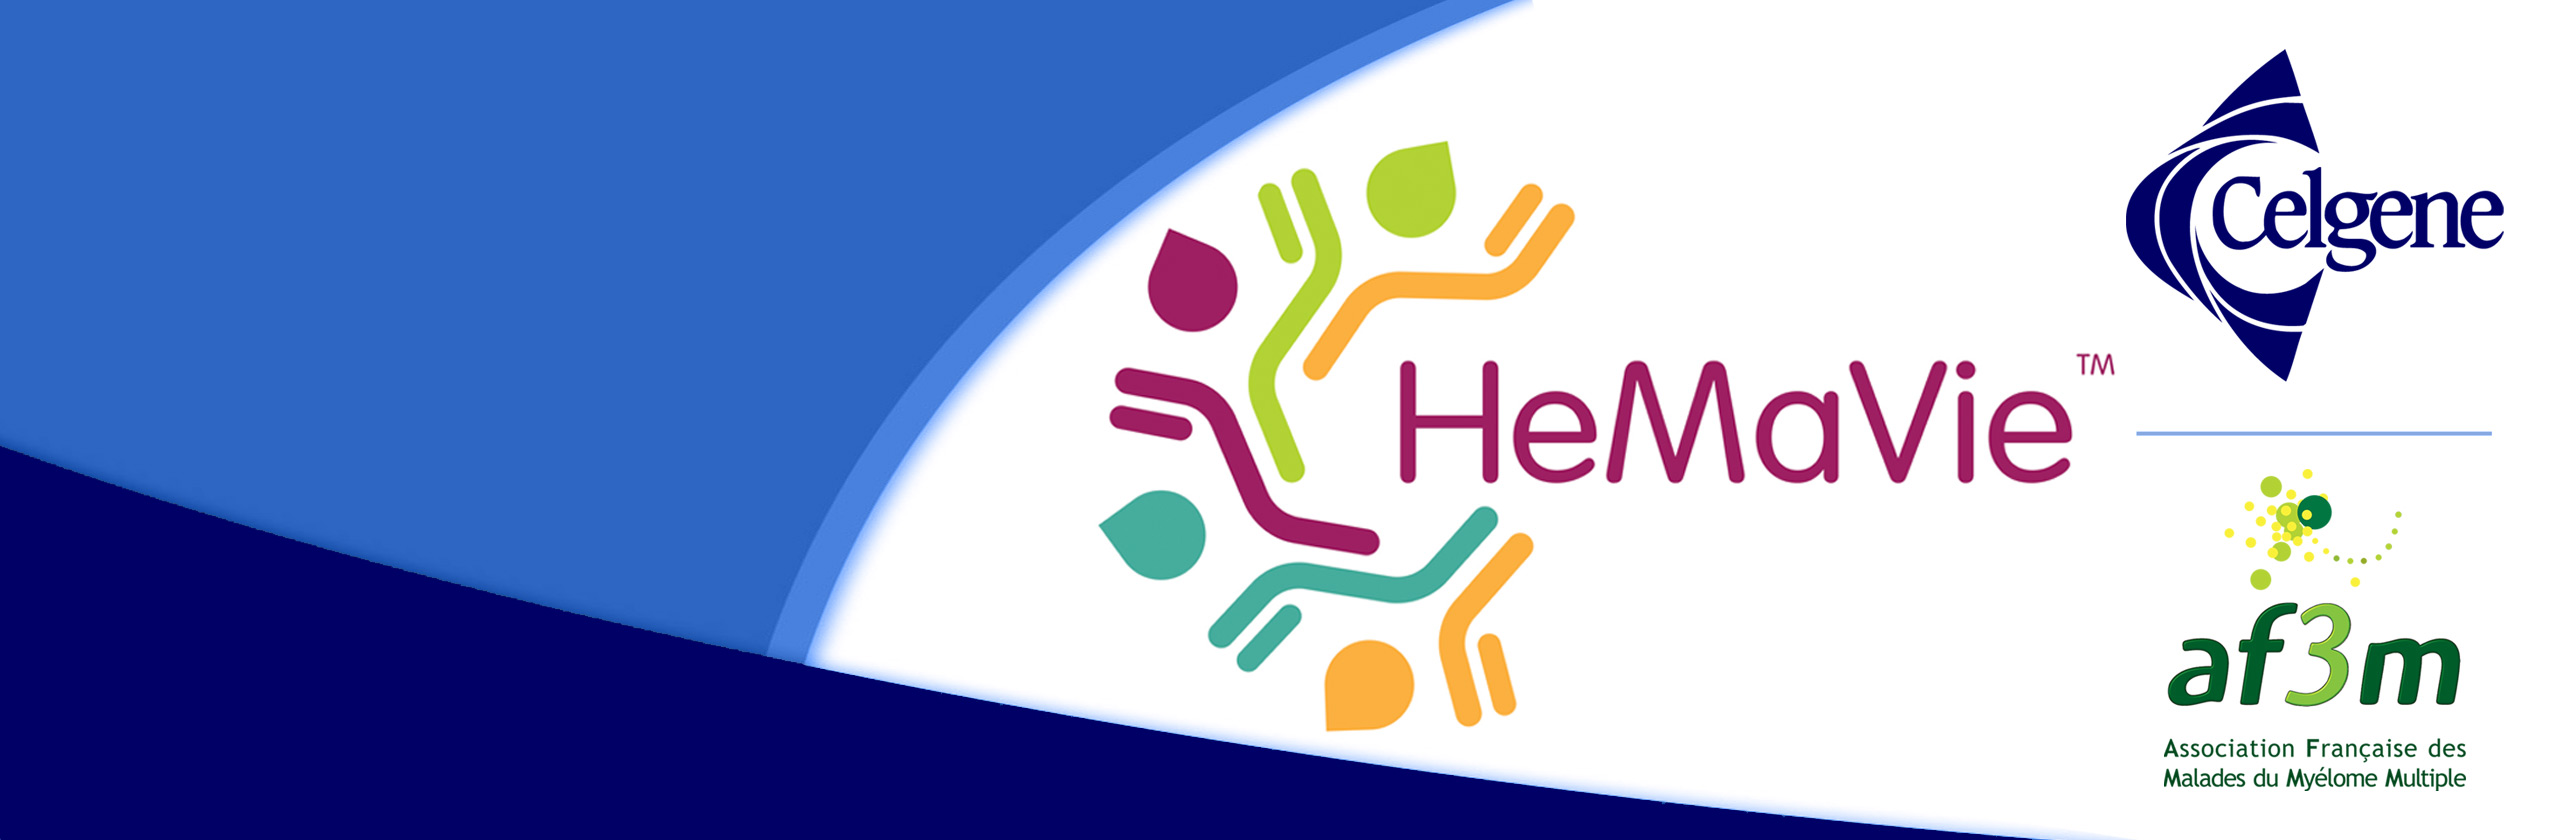 HeMaVie, Celgene and af3m